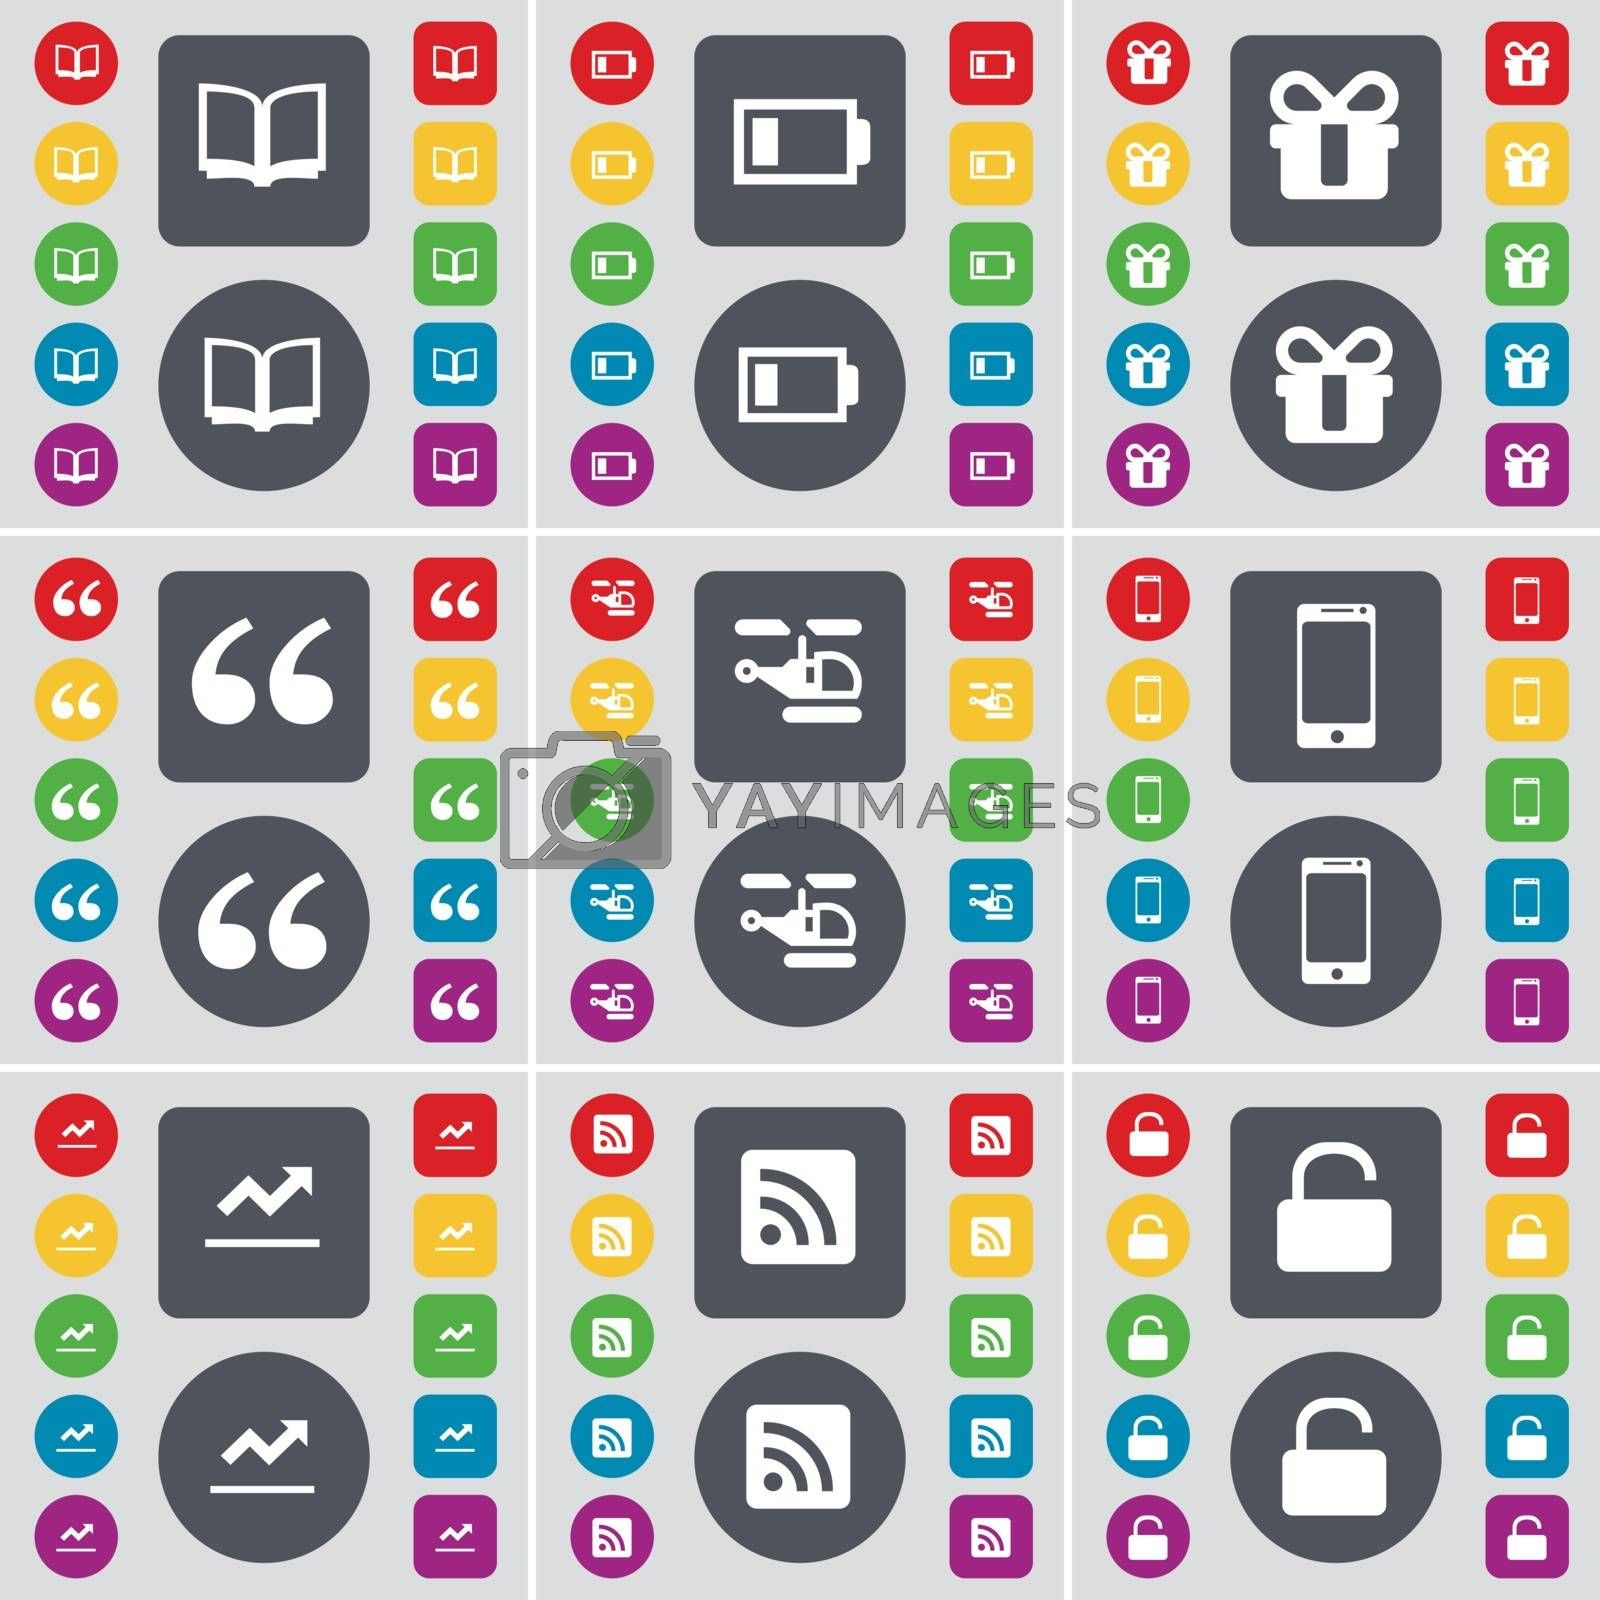 Book, Battery, Gift, Quotation mark, Helocopter, Smartphone, Graph, RSS, Lock icon symbol. A large set of flat, colored buttons for your design. Vector by serhii_lohvyniuk